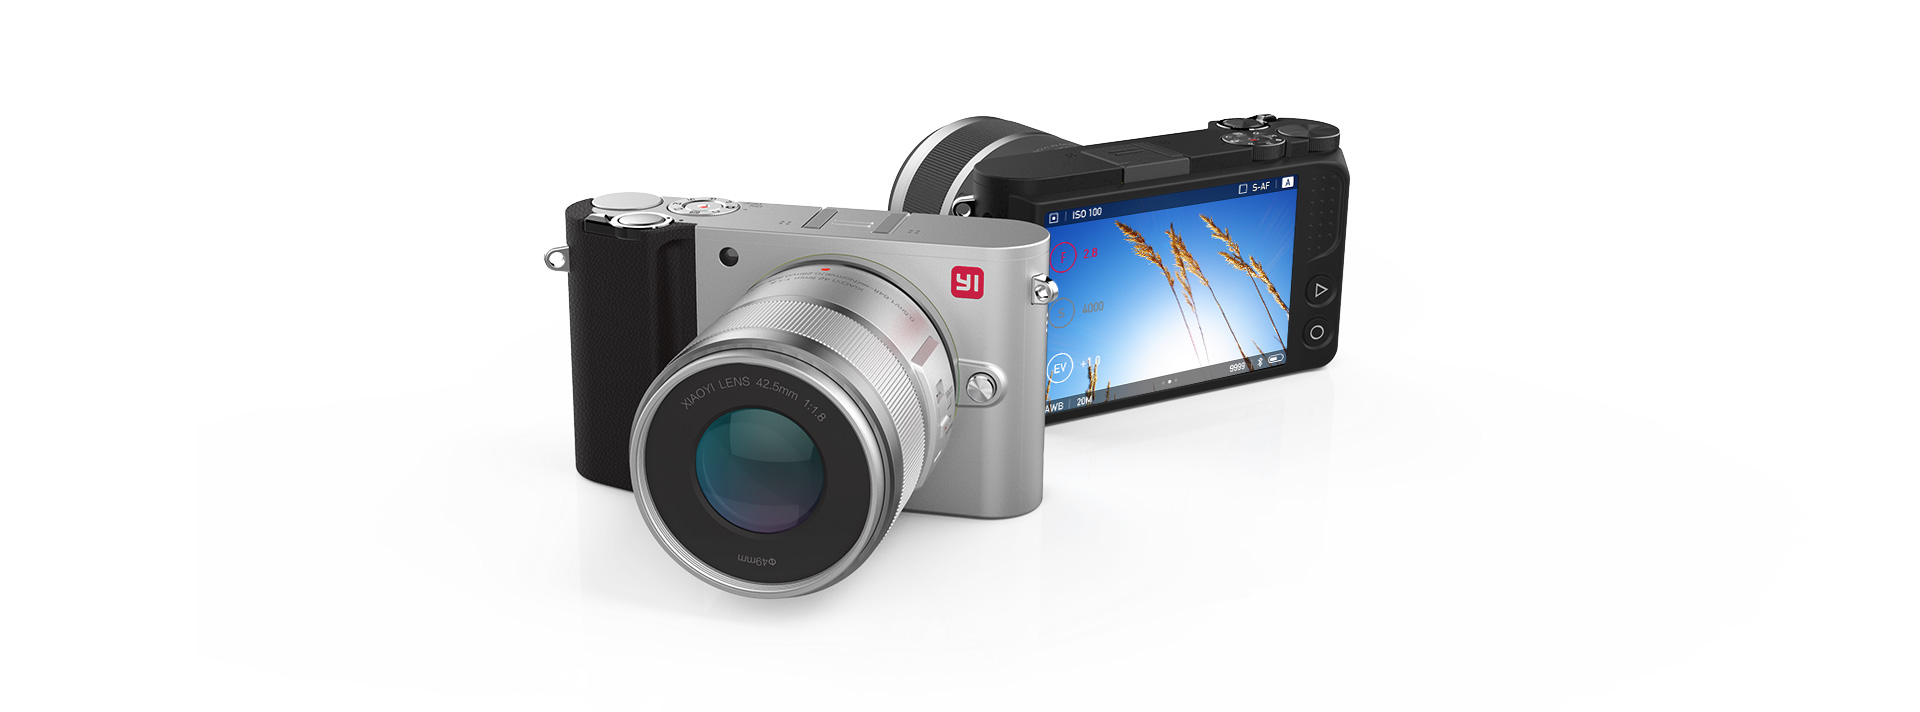 L'appareil photo YI M1 Mirrorless par YI technology